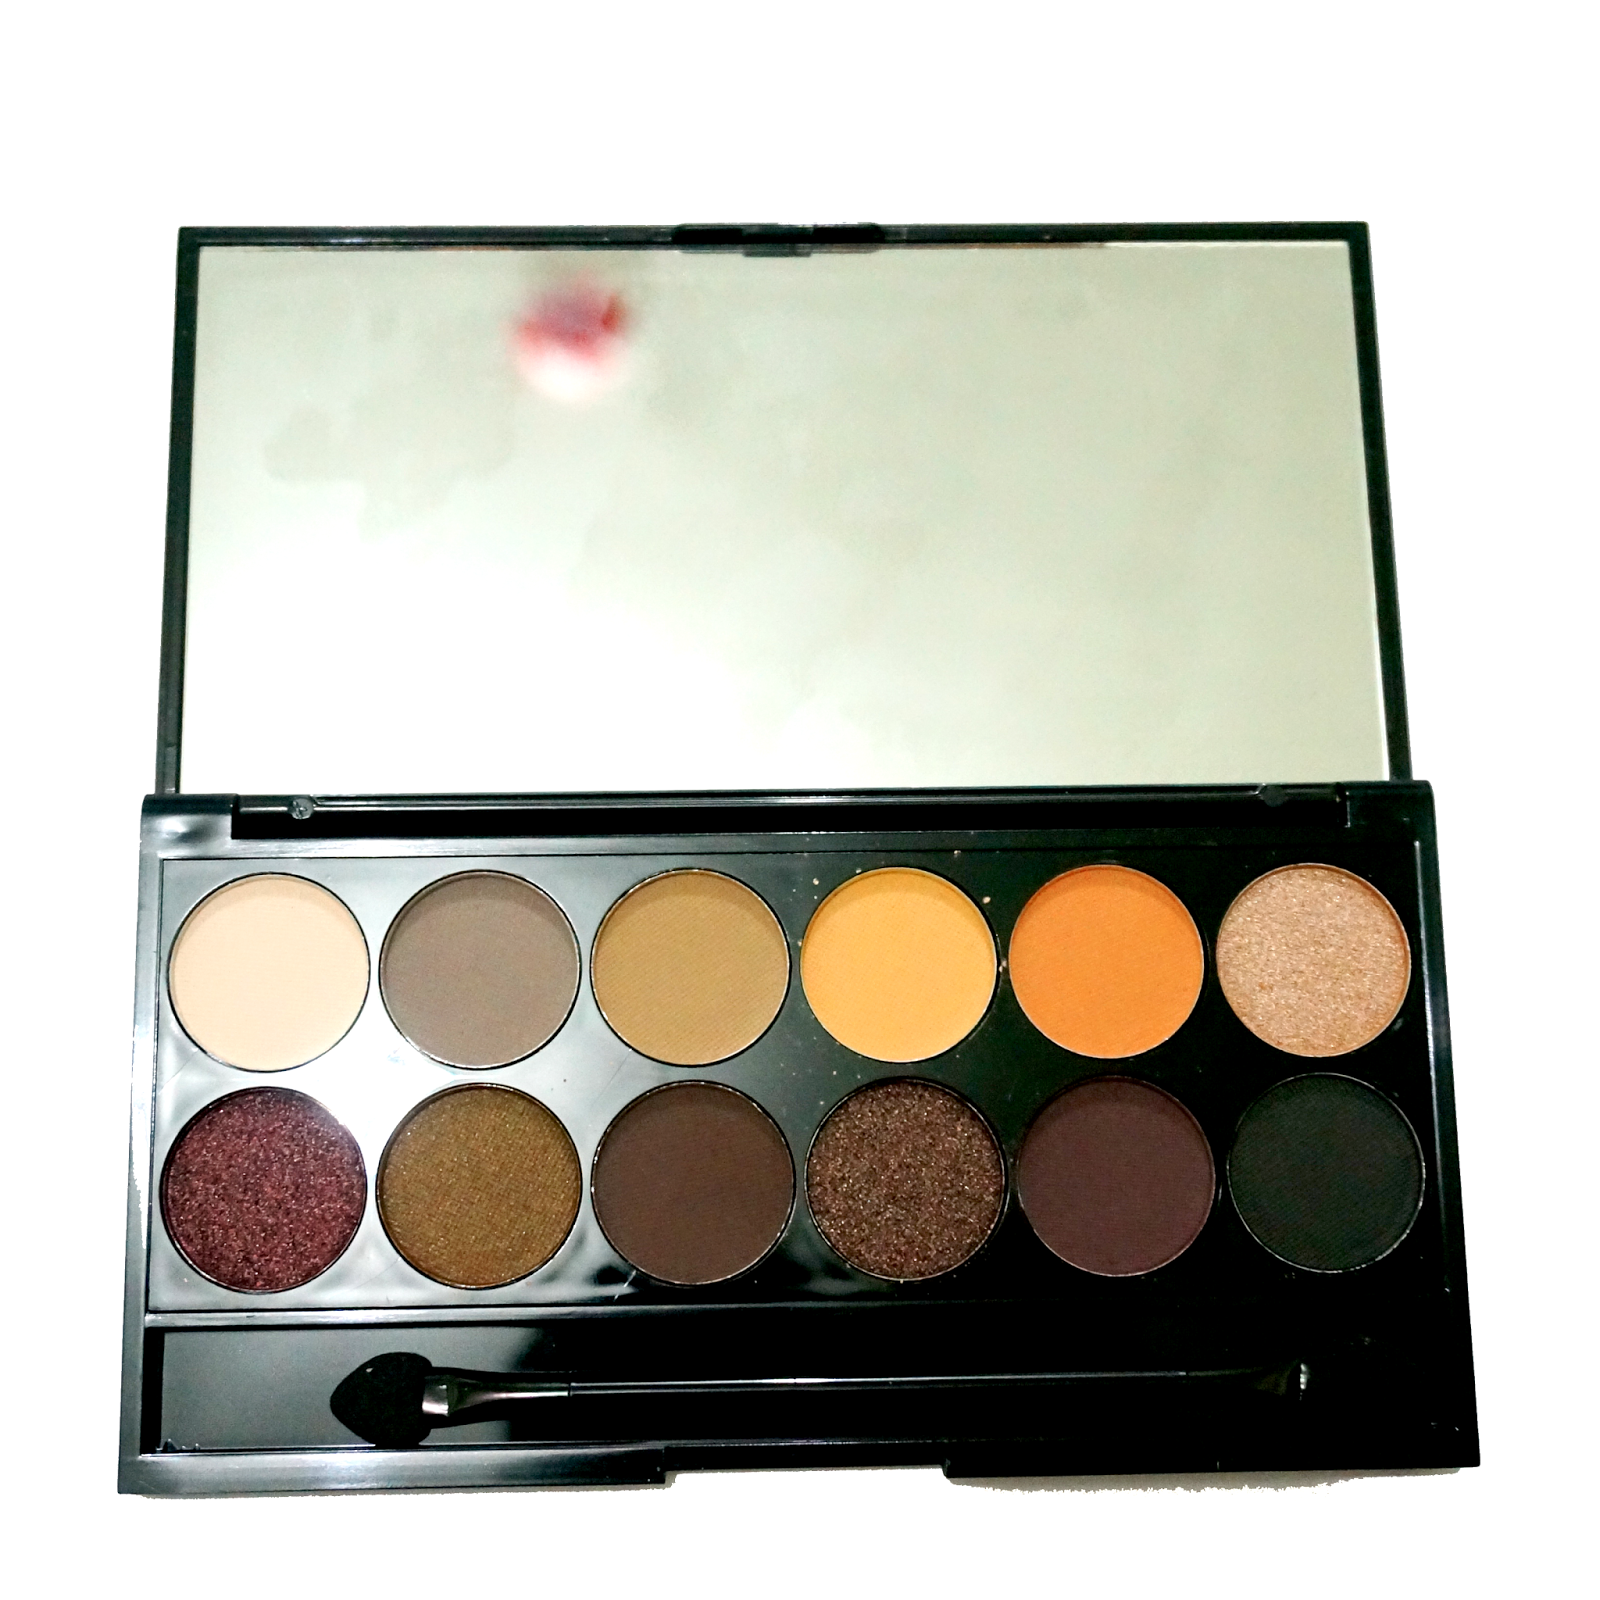 Taupe A shimmery champange color Very monly found in neutral palette very lovely and finally some pigmentation Thank God